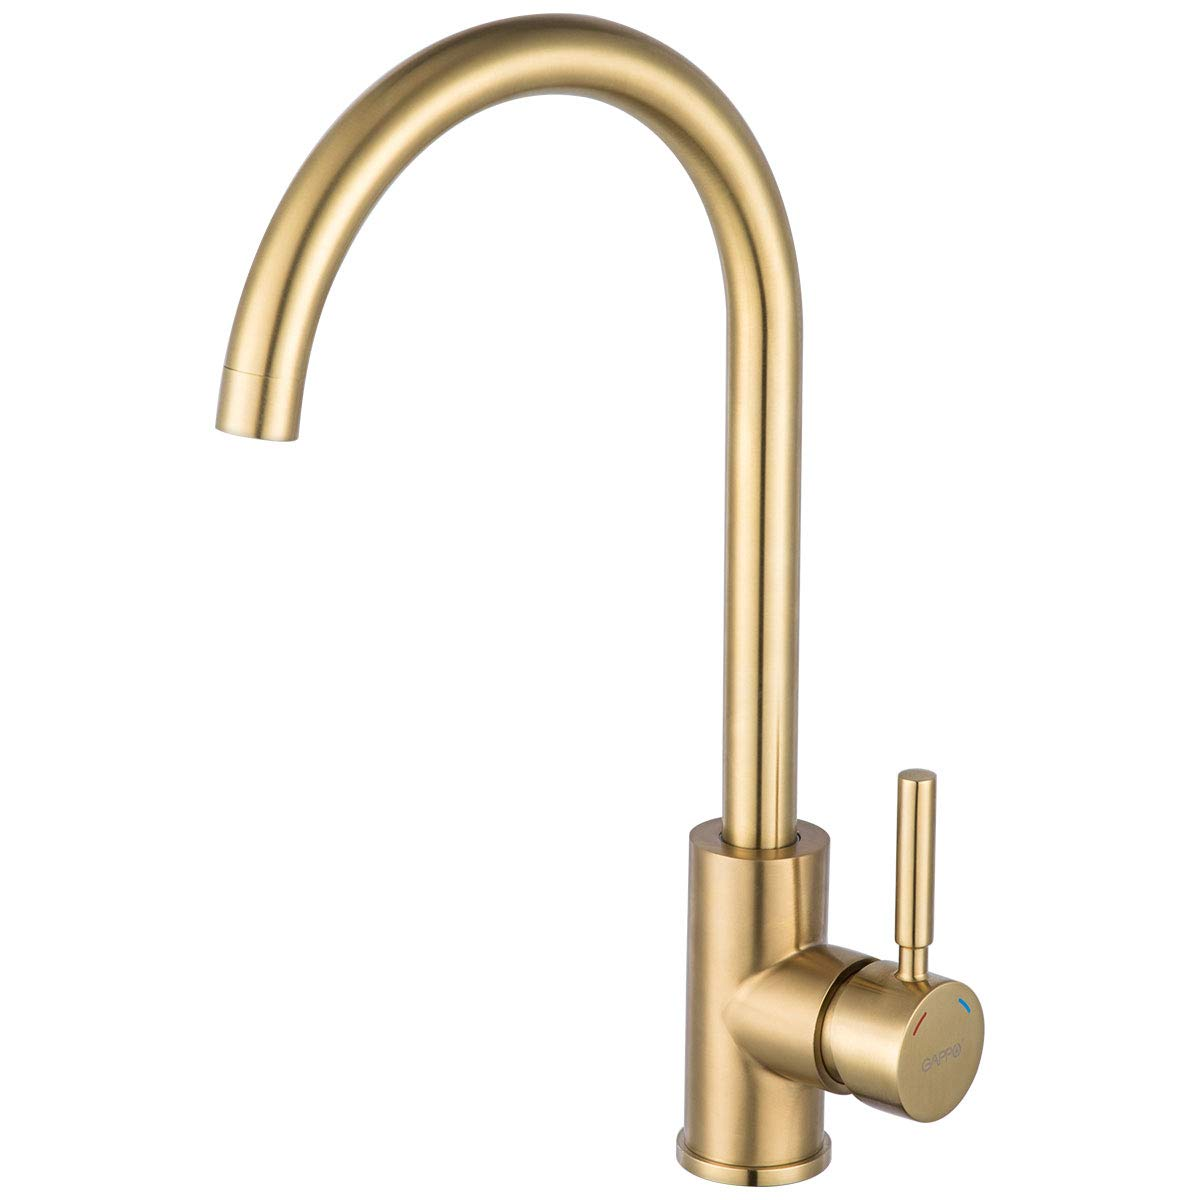 Bar Kitchen Sink Faucet Brushed Gold GAPPO Lead Free Single Handle Bathroom Faucet Prep Kitchen Faucet in Stainless by GAPPO